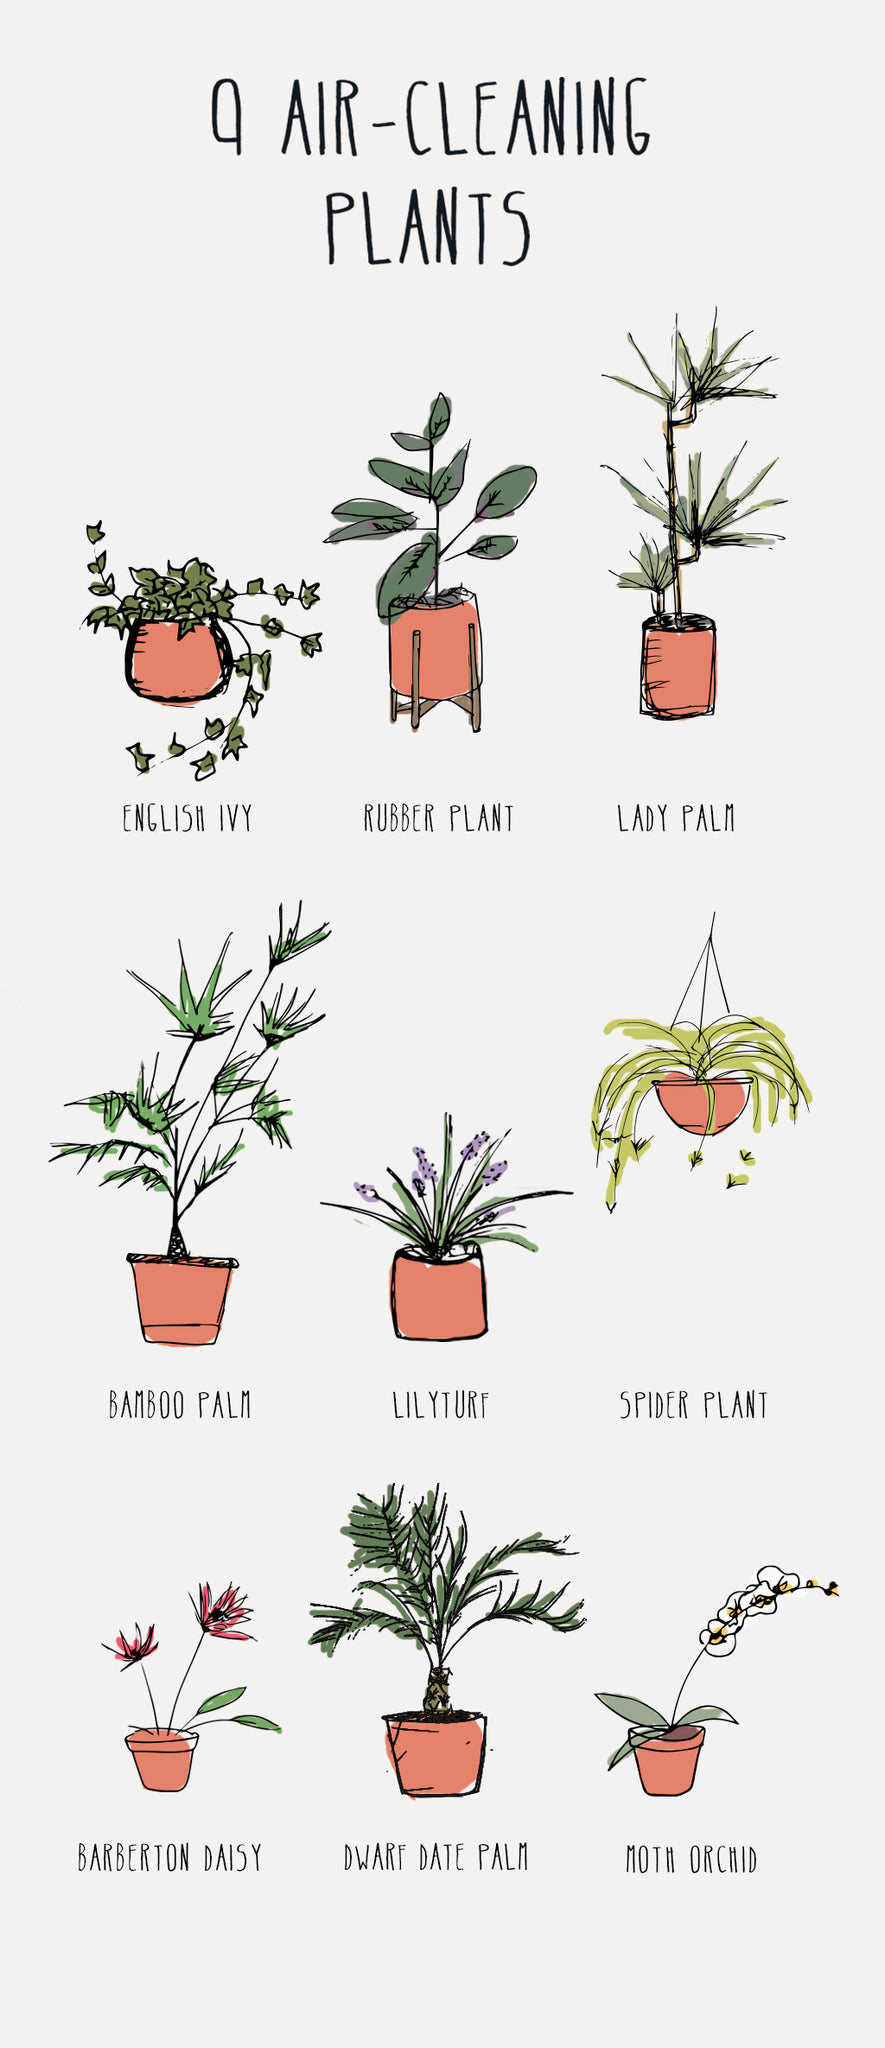 Best Air-Cleaning Plants